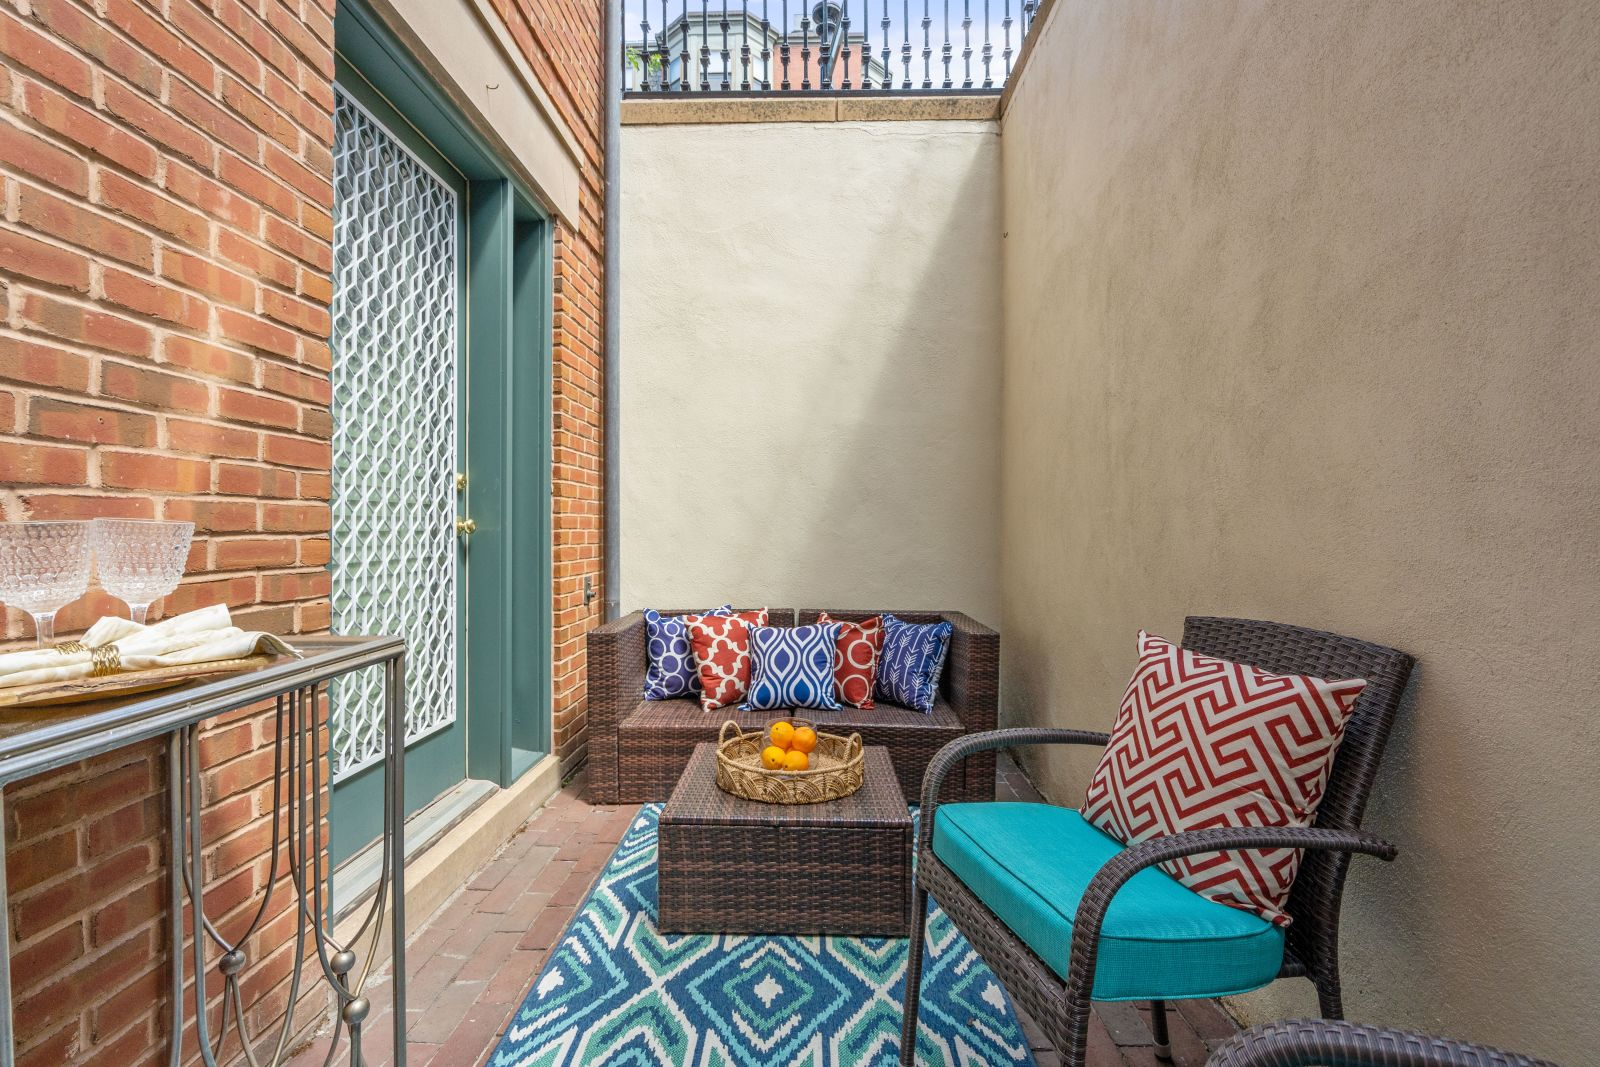 City patio with furniture